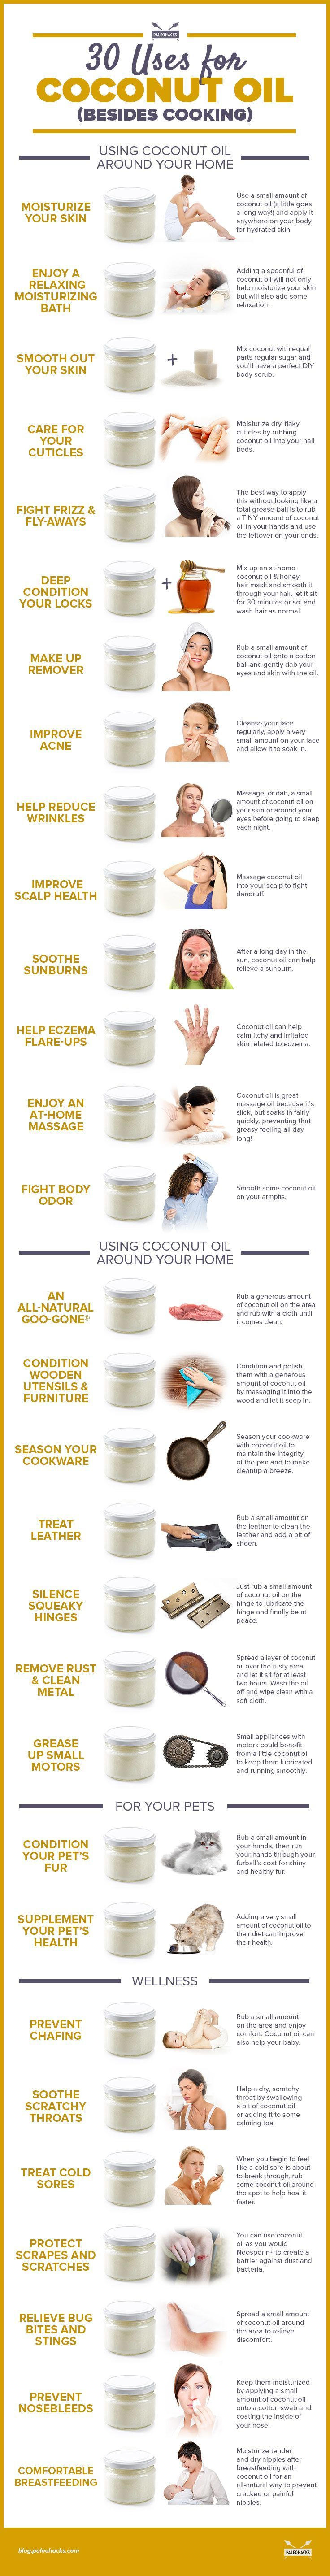 30 uses for coconut oil that don't involve cooking! Did you know that coconut oil is also great for cleaning?! Or that it's a fantastic beauty product? http://beautifulclearskin.net/